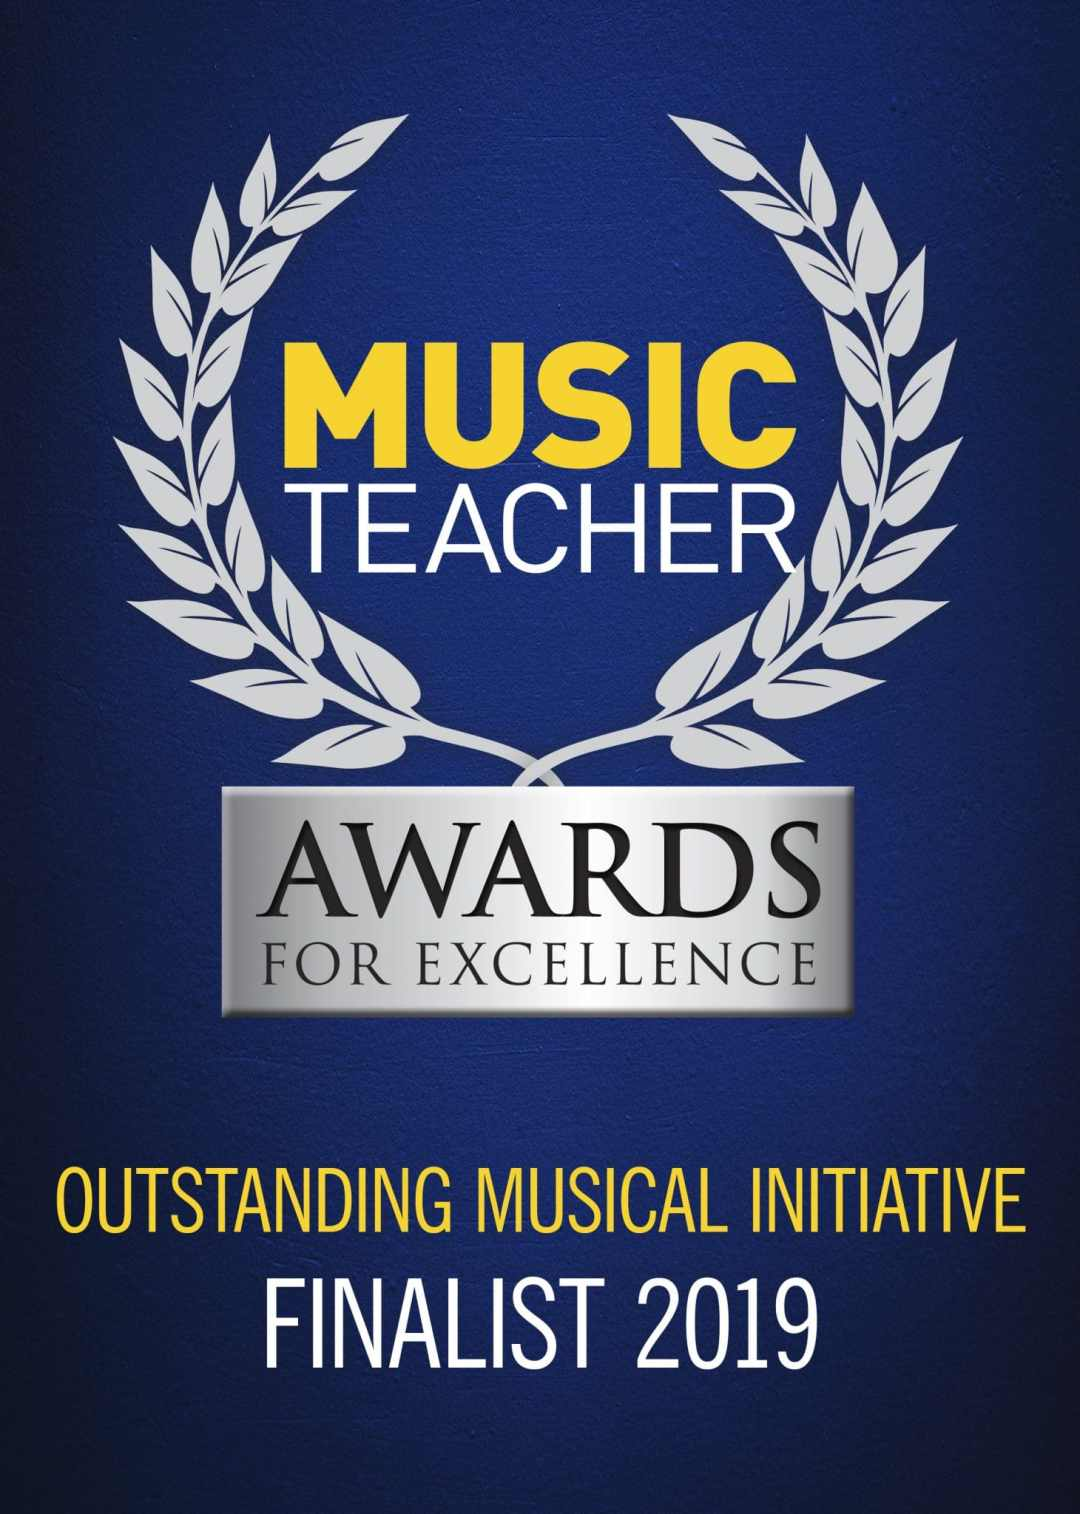 Music Teachers Award For Excellence – Outstanding Musical Initiative 2019 Finalists!